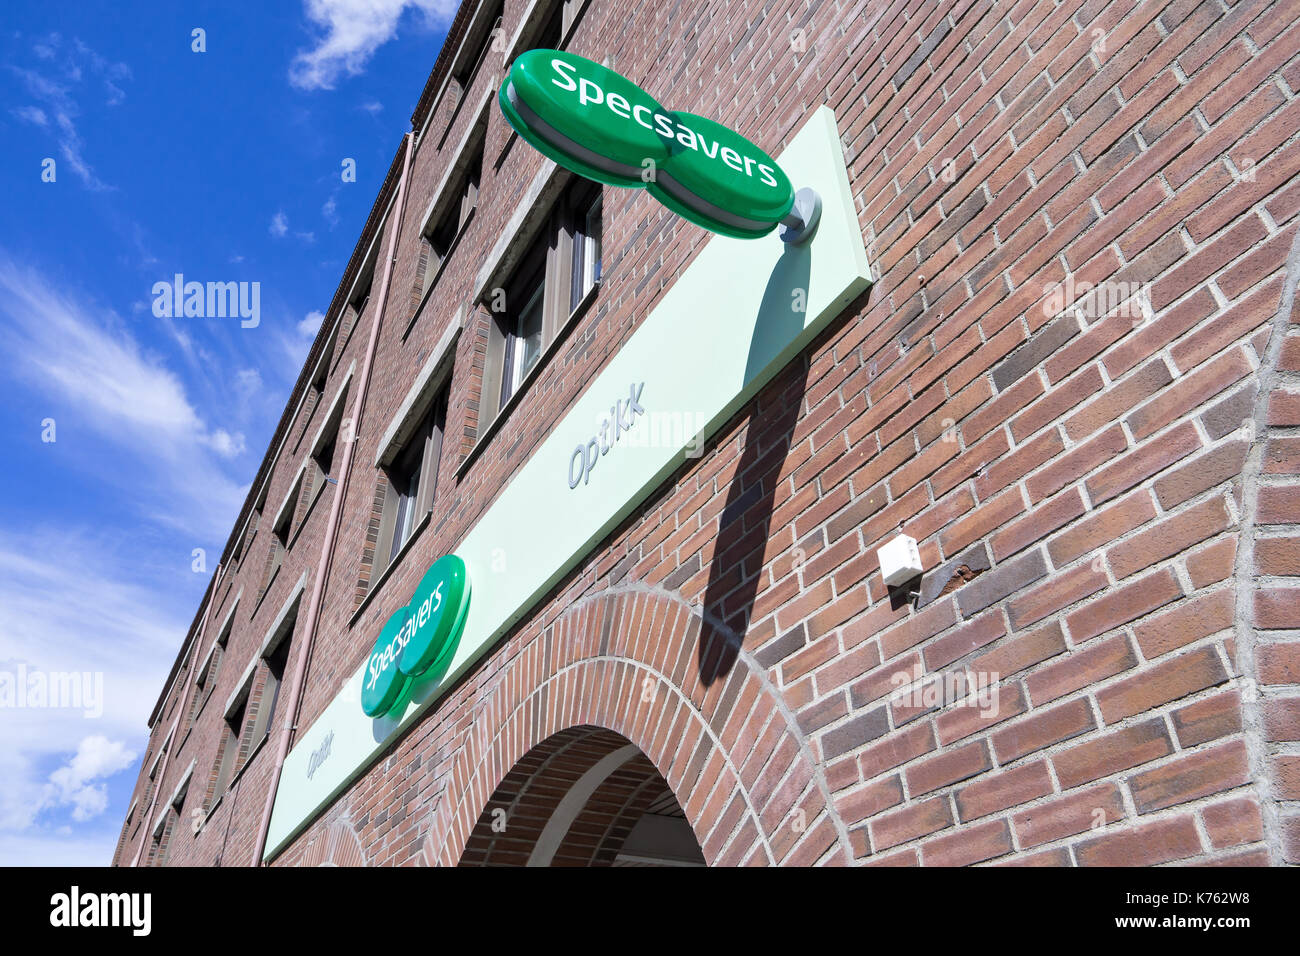 Specsavers branch in Trondheim, Norway. Specsavers is a British optical retail chain, operating globally, which offers optician services. - Stock Image